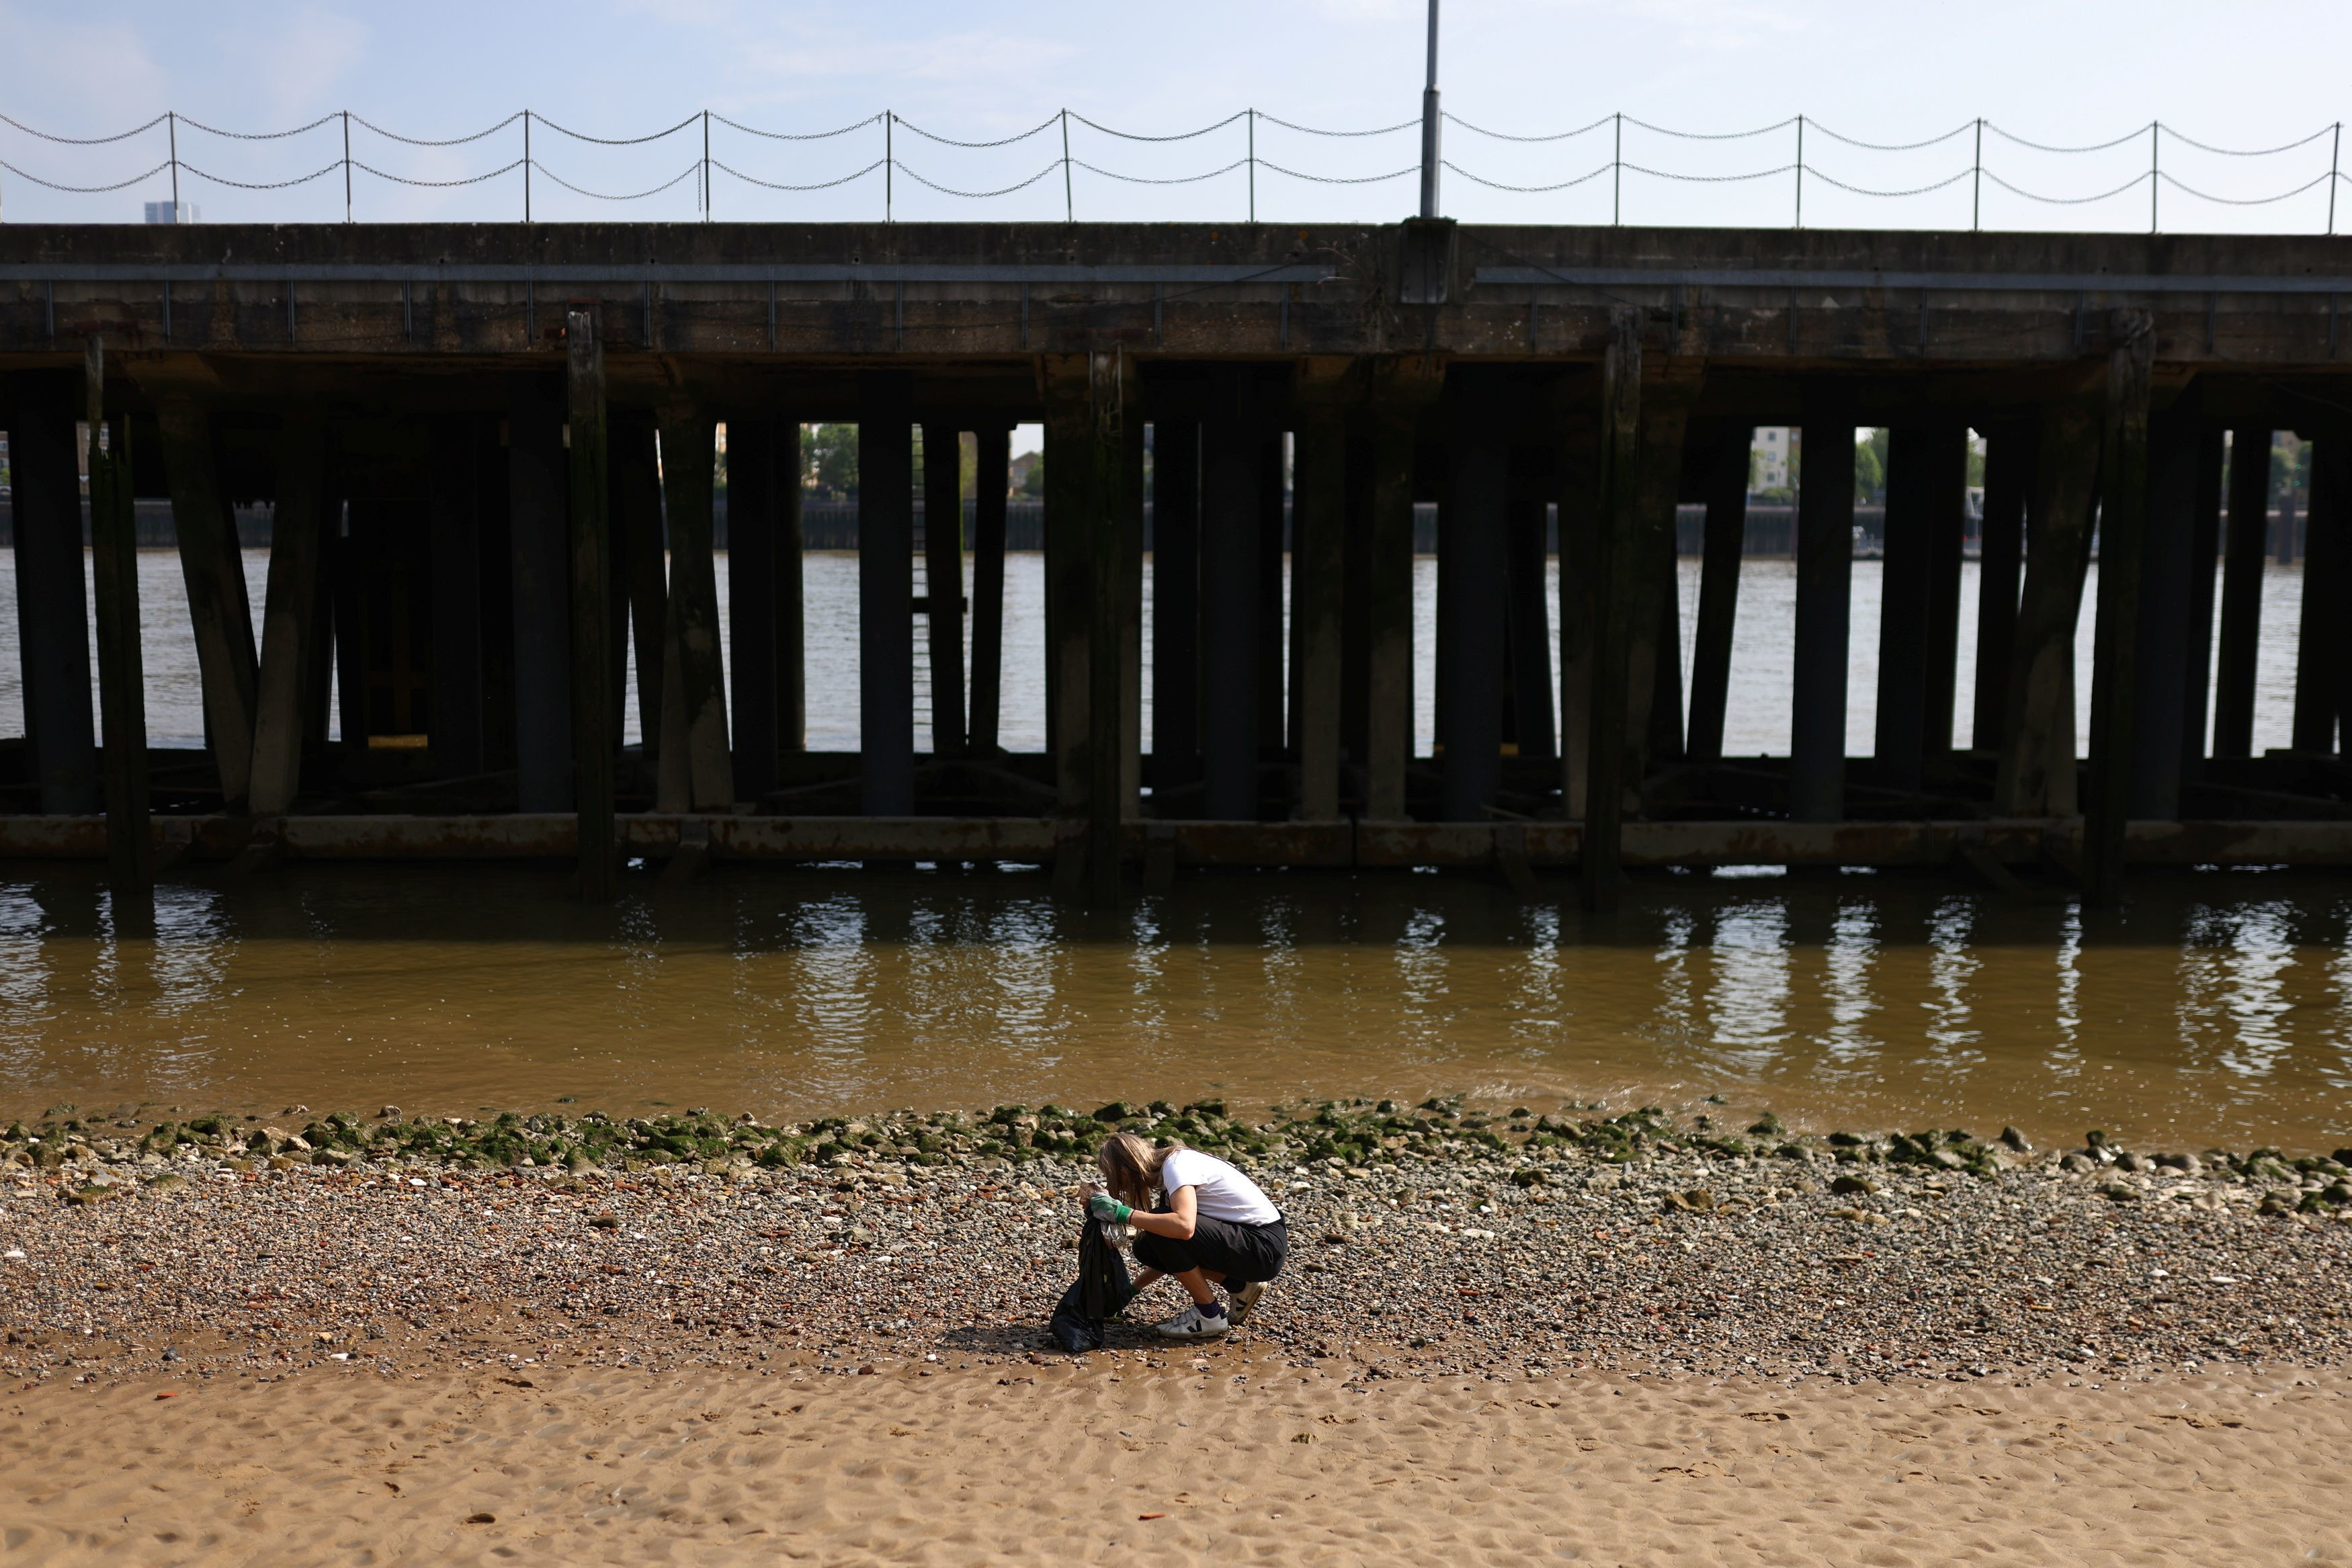 Flora Blathwayt, founder of Washed Up Cards, collects plastics found washed up on the banks of the river Thames.